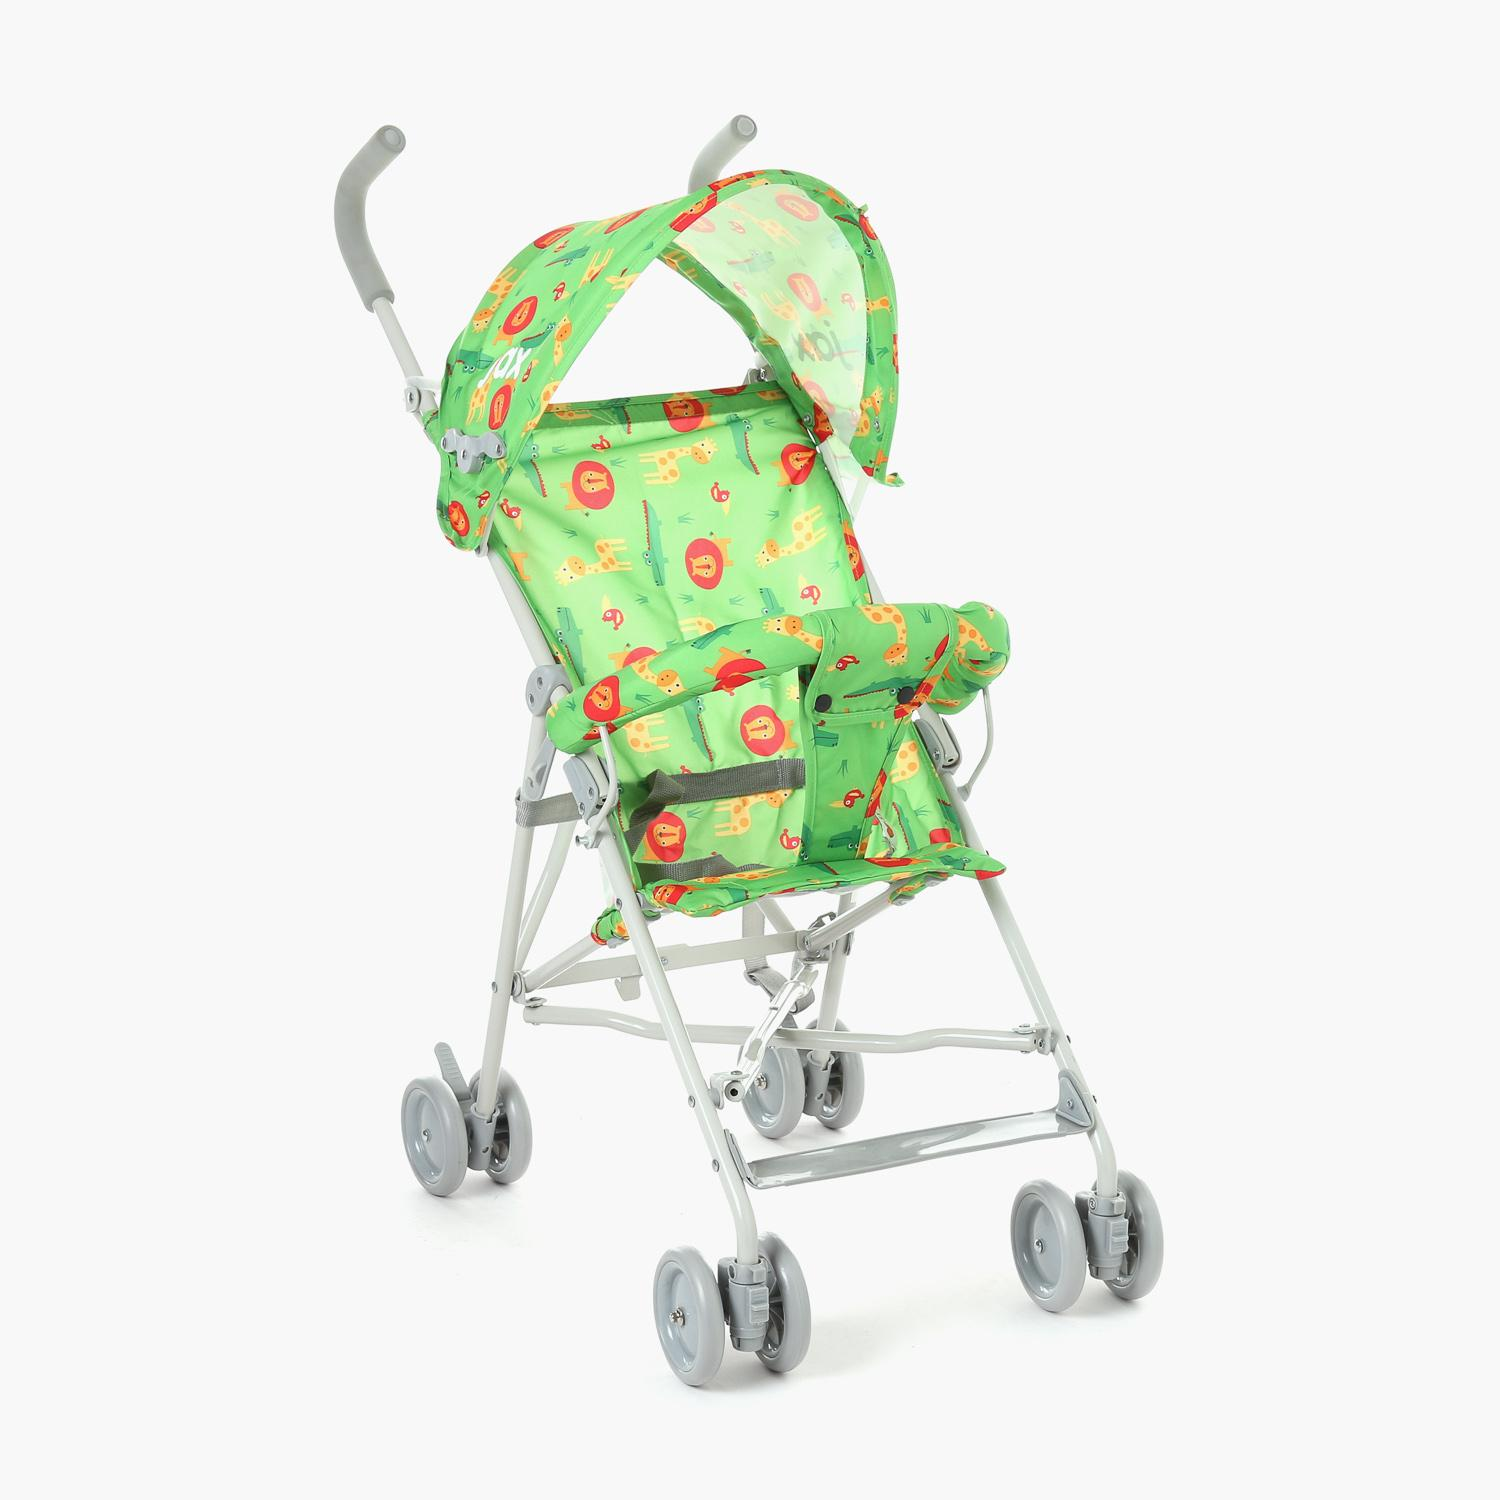 Jogging Stroller For Sale Baby Joggers Online Deals Prices In